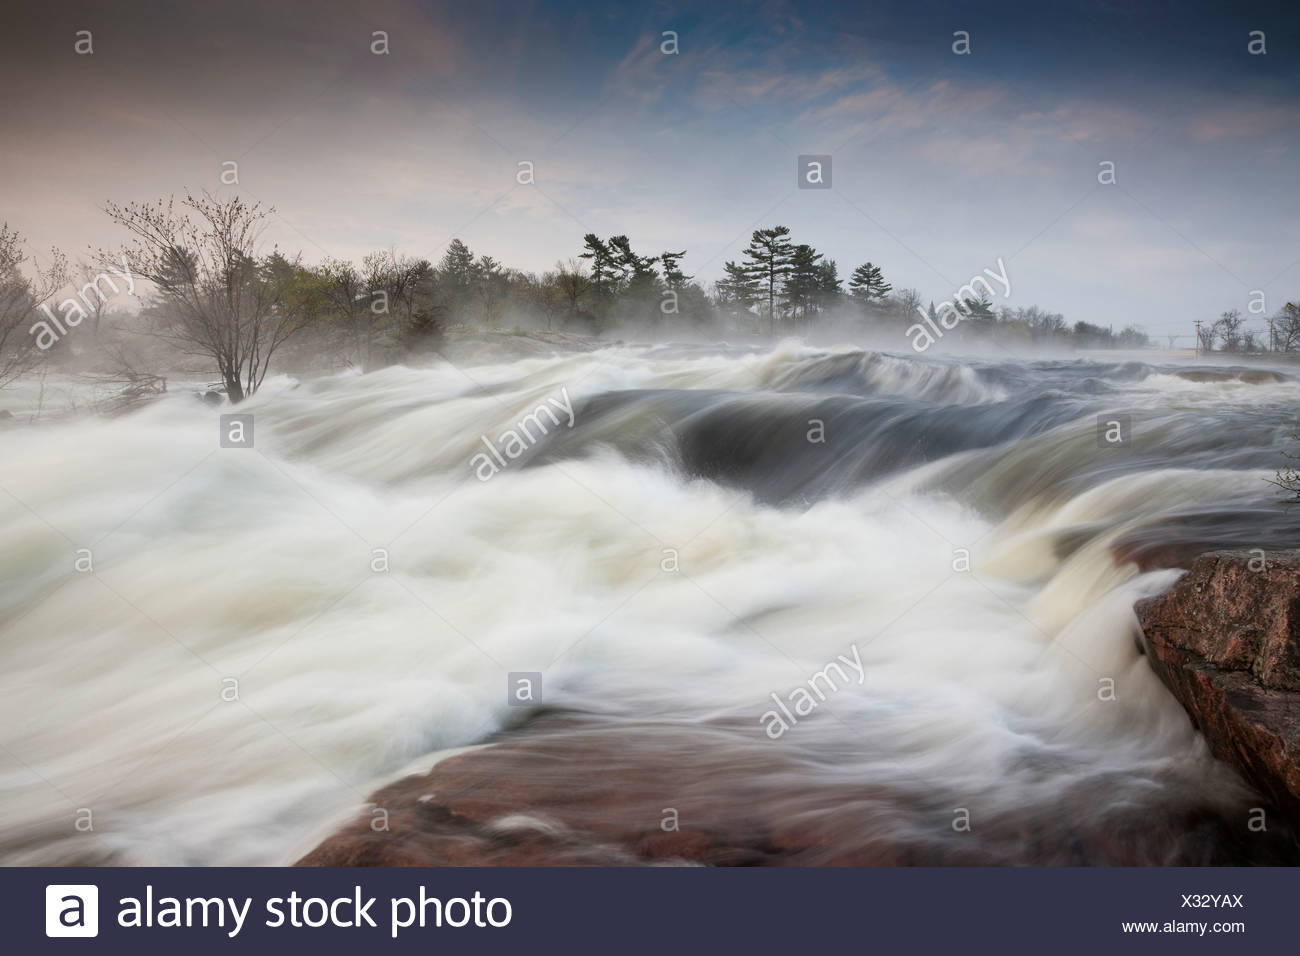 wet spring raised water levels Otonabee River - Stock Image